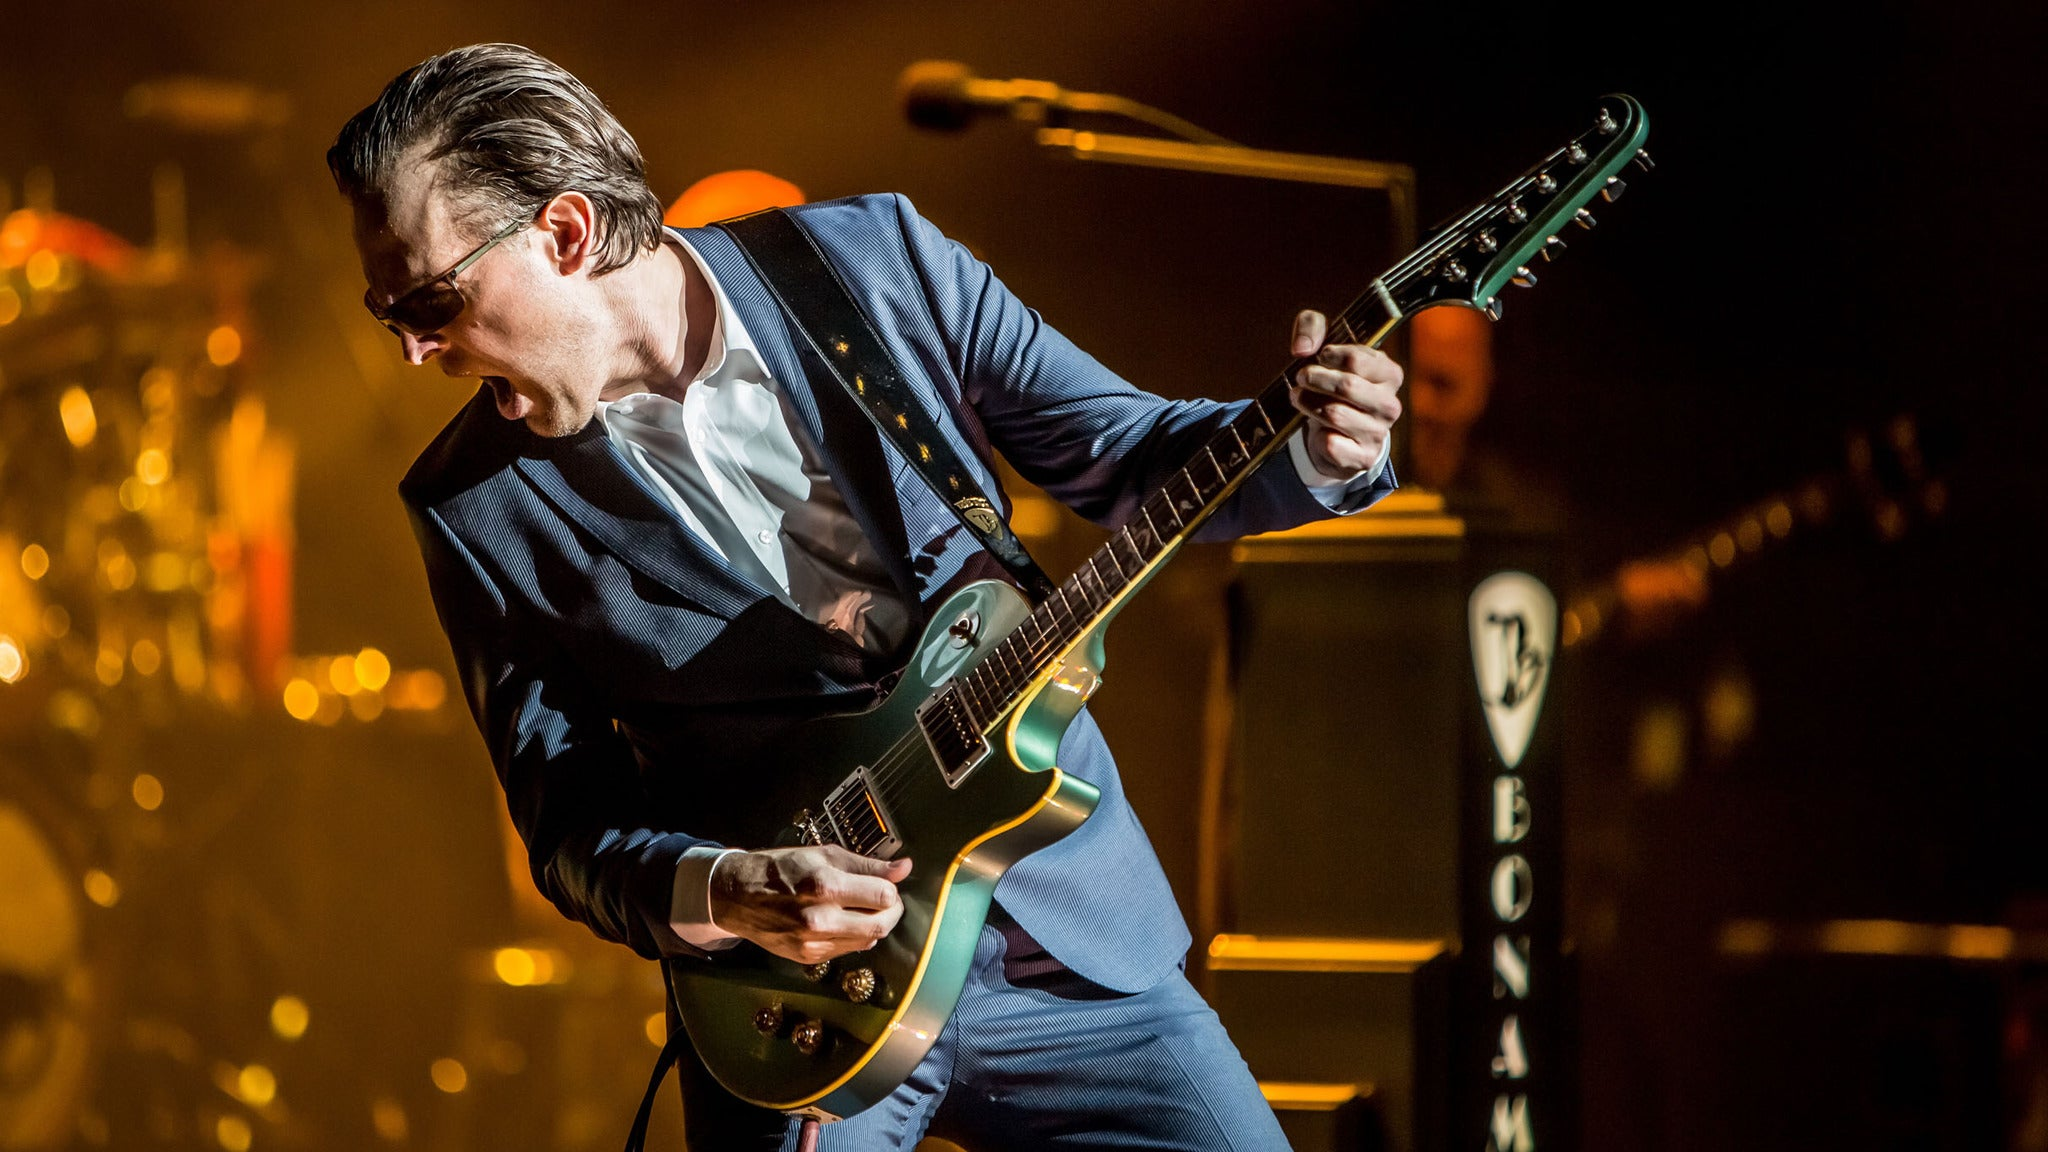 Joe Bonamassa at Wagner Noel Performing Arts Center